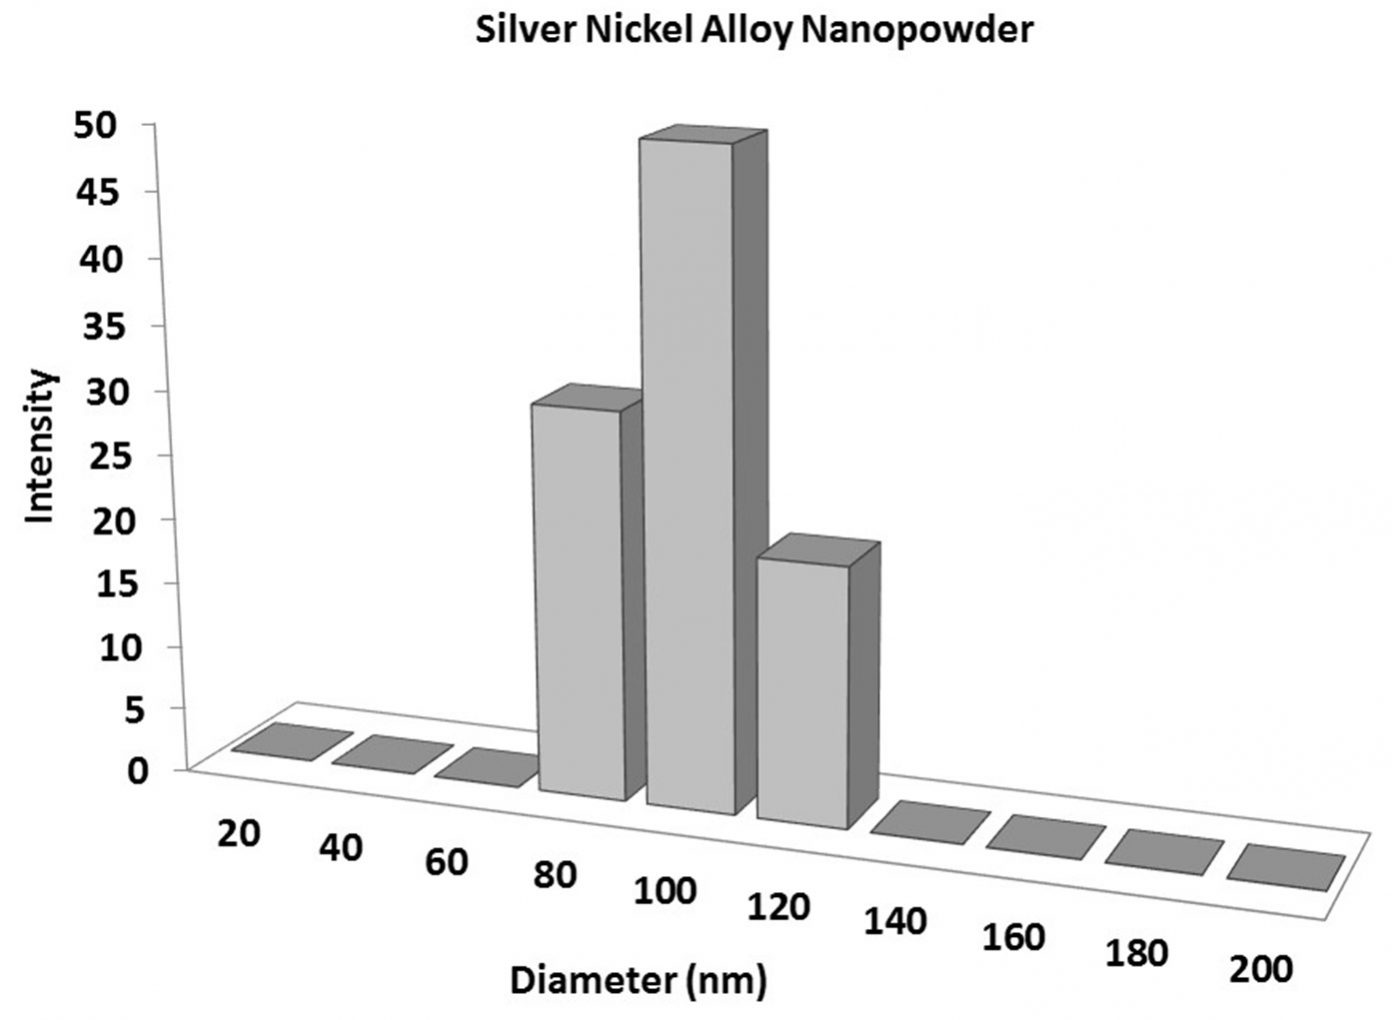 Particles Size Analysis - Silver Nickel Alloy Nanopowder